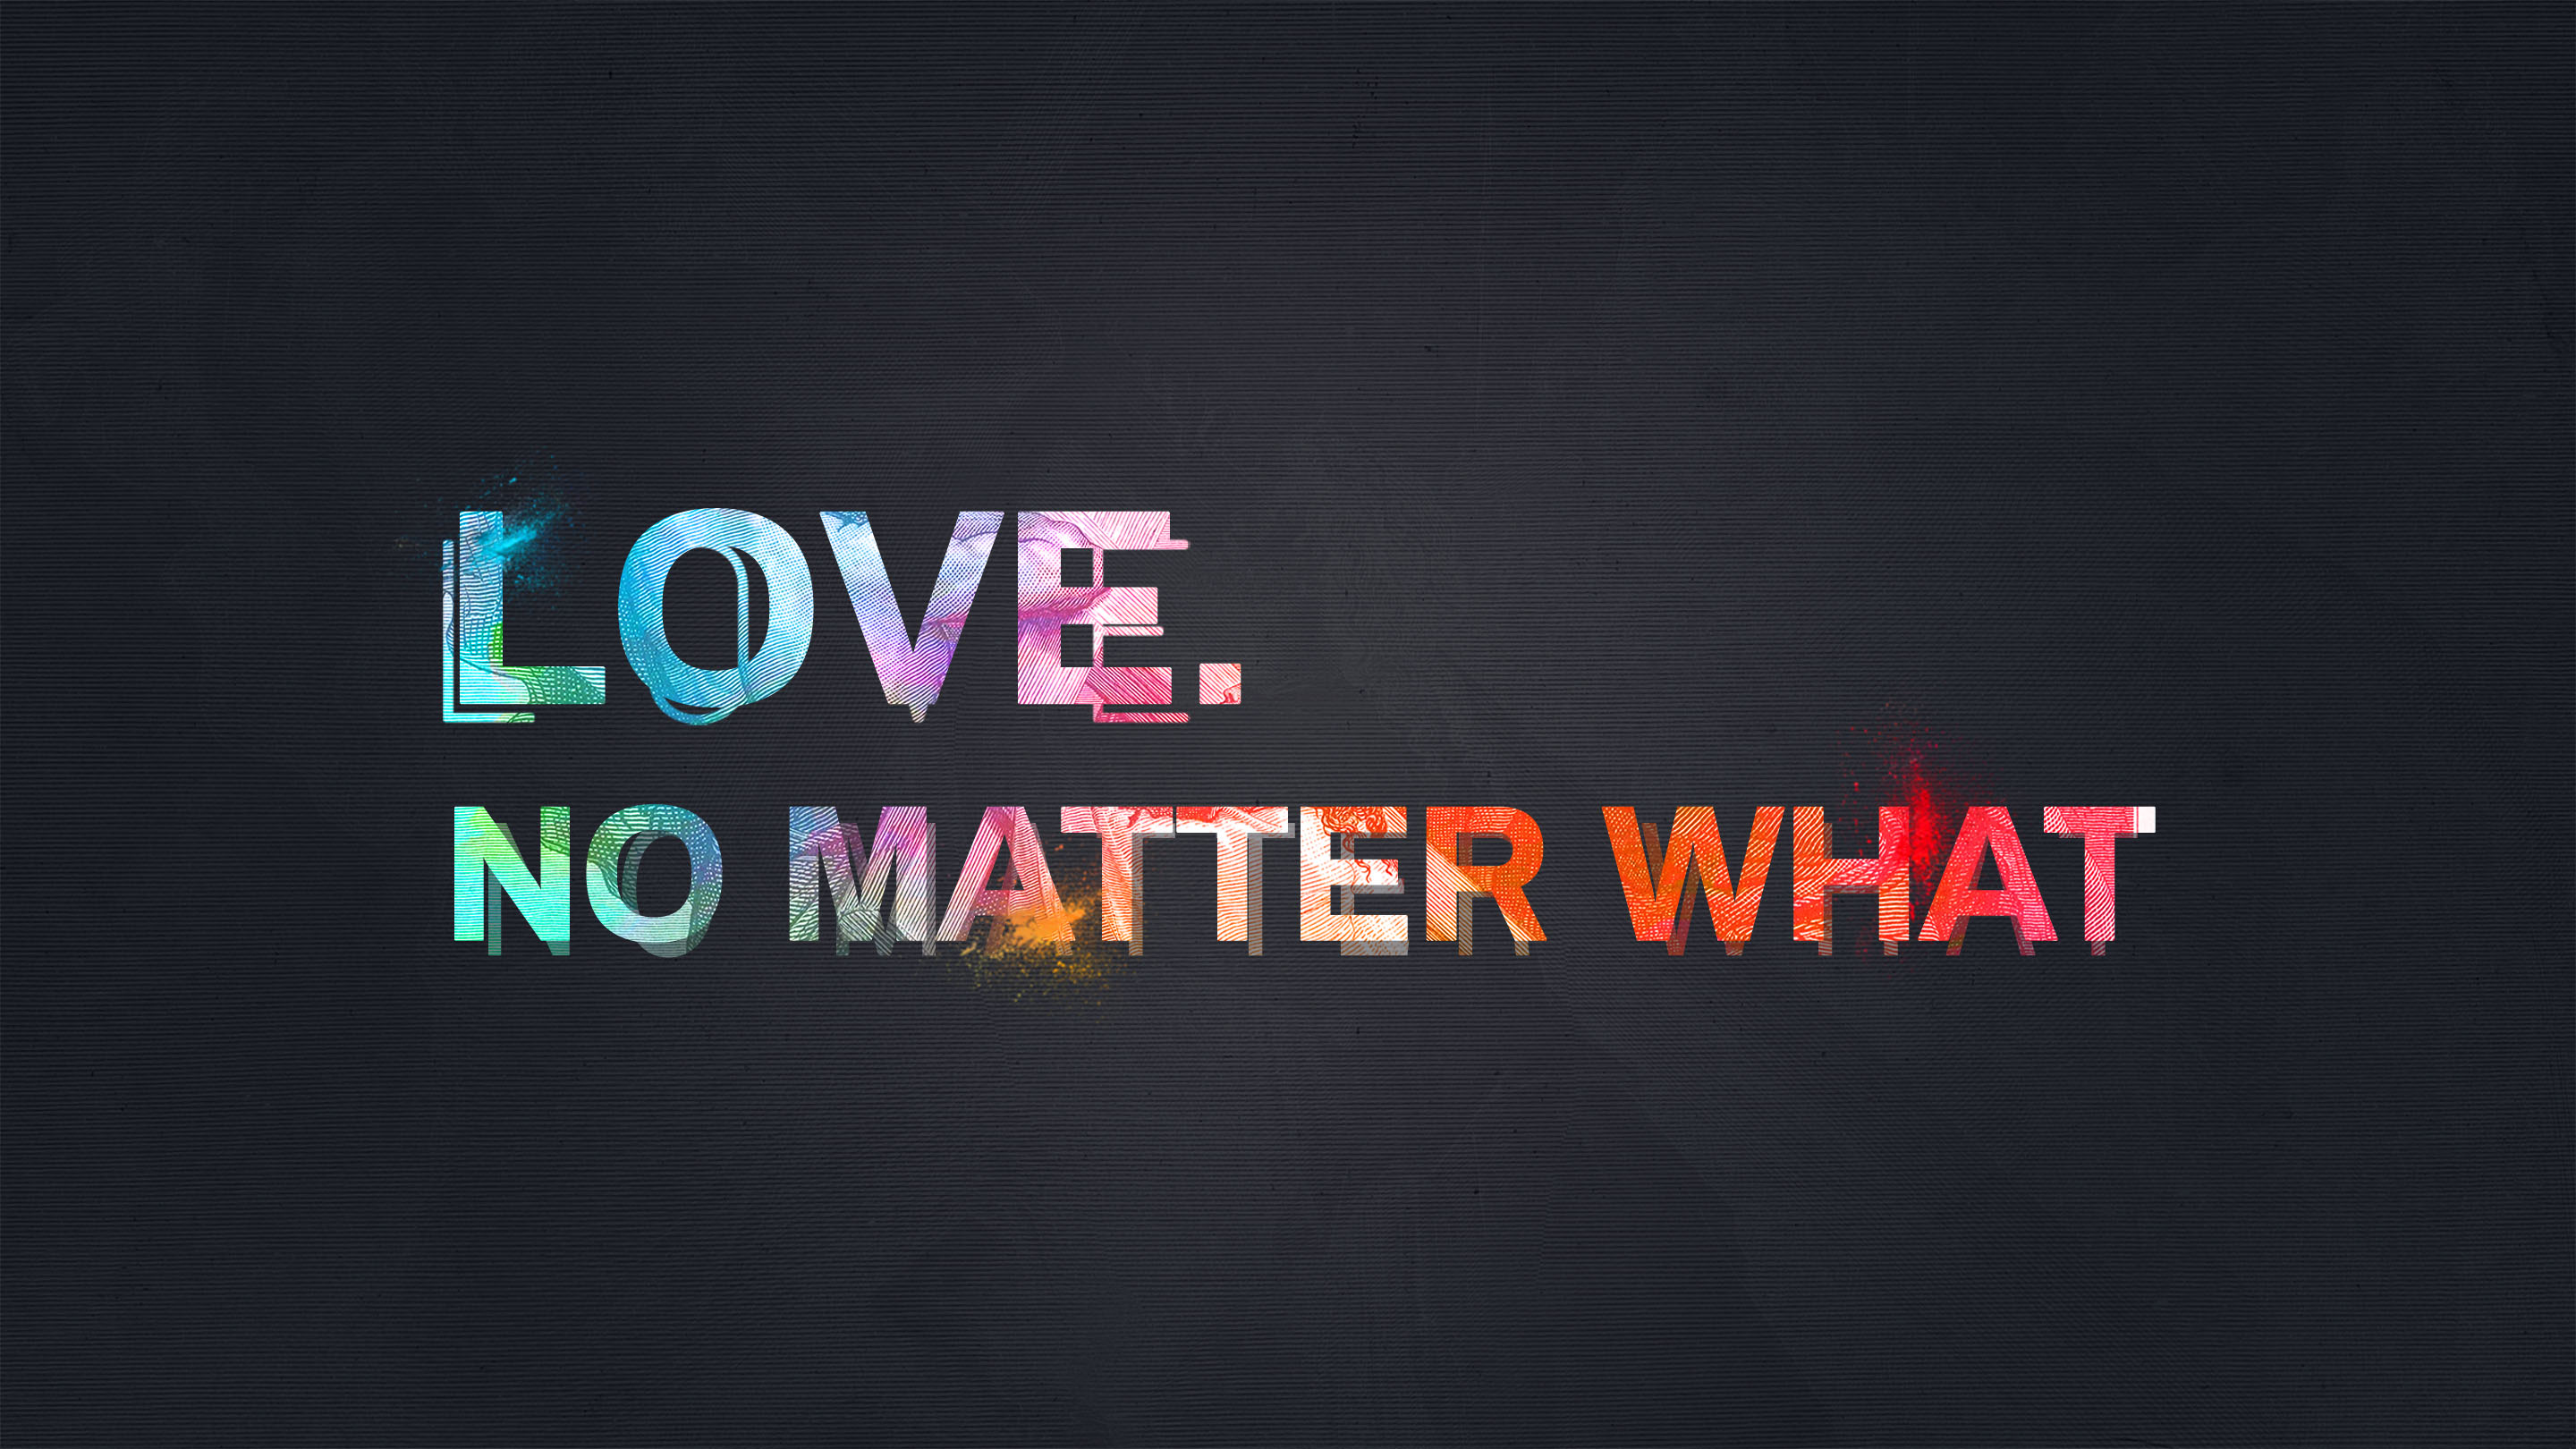 LOVE. NO MATTER WHAT